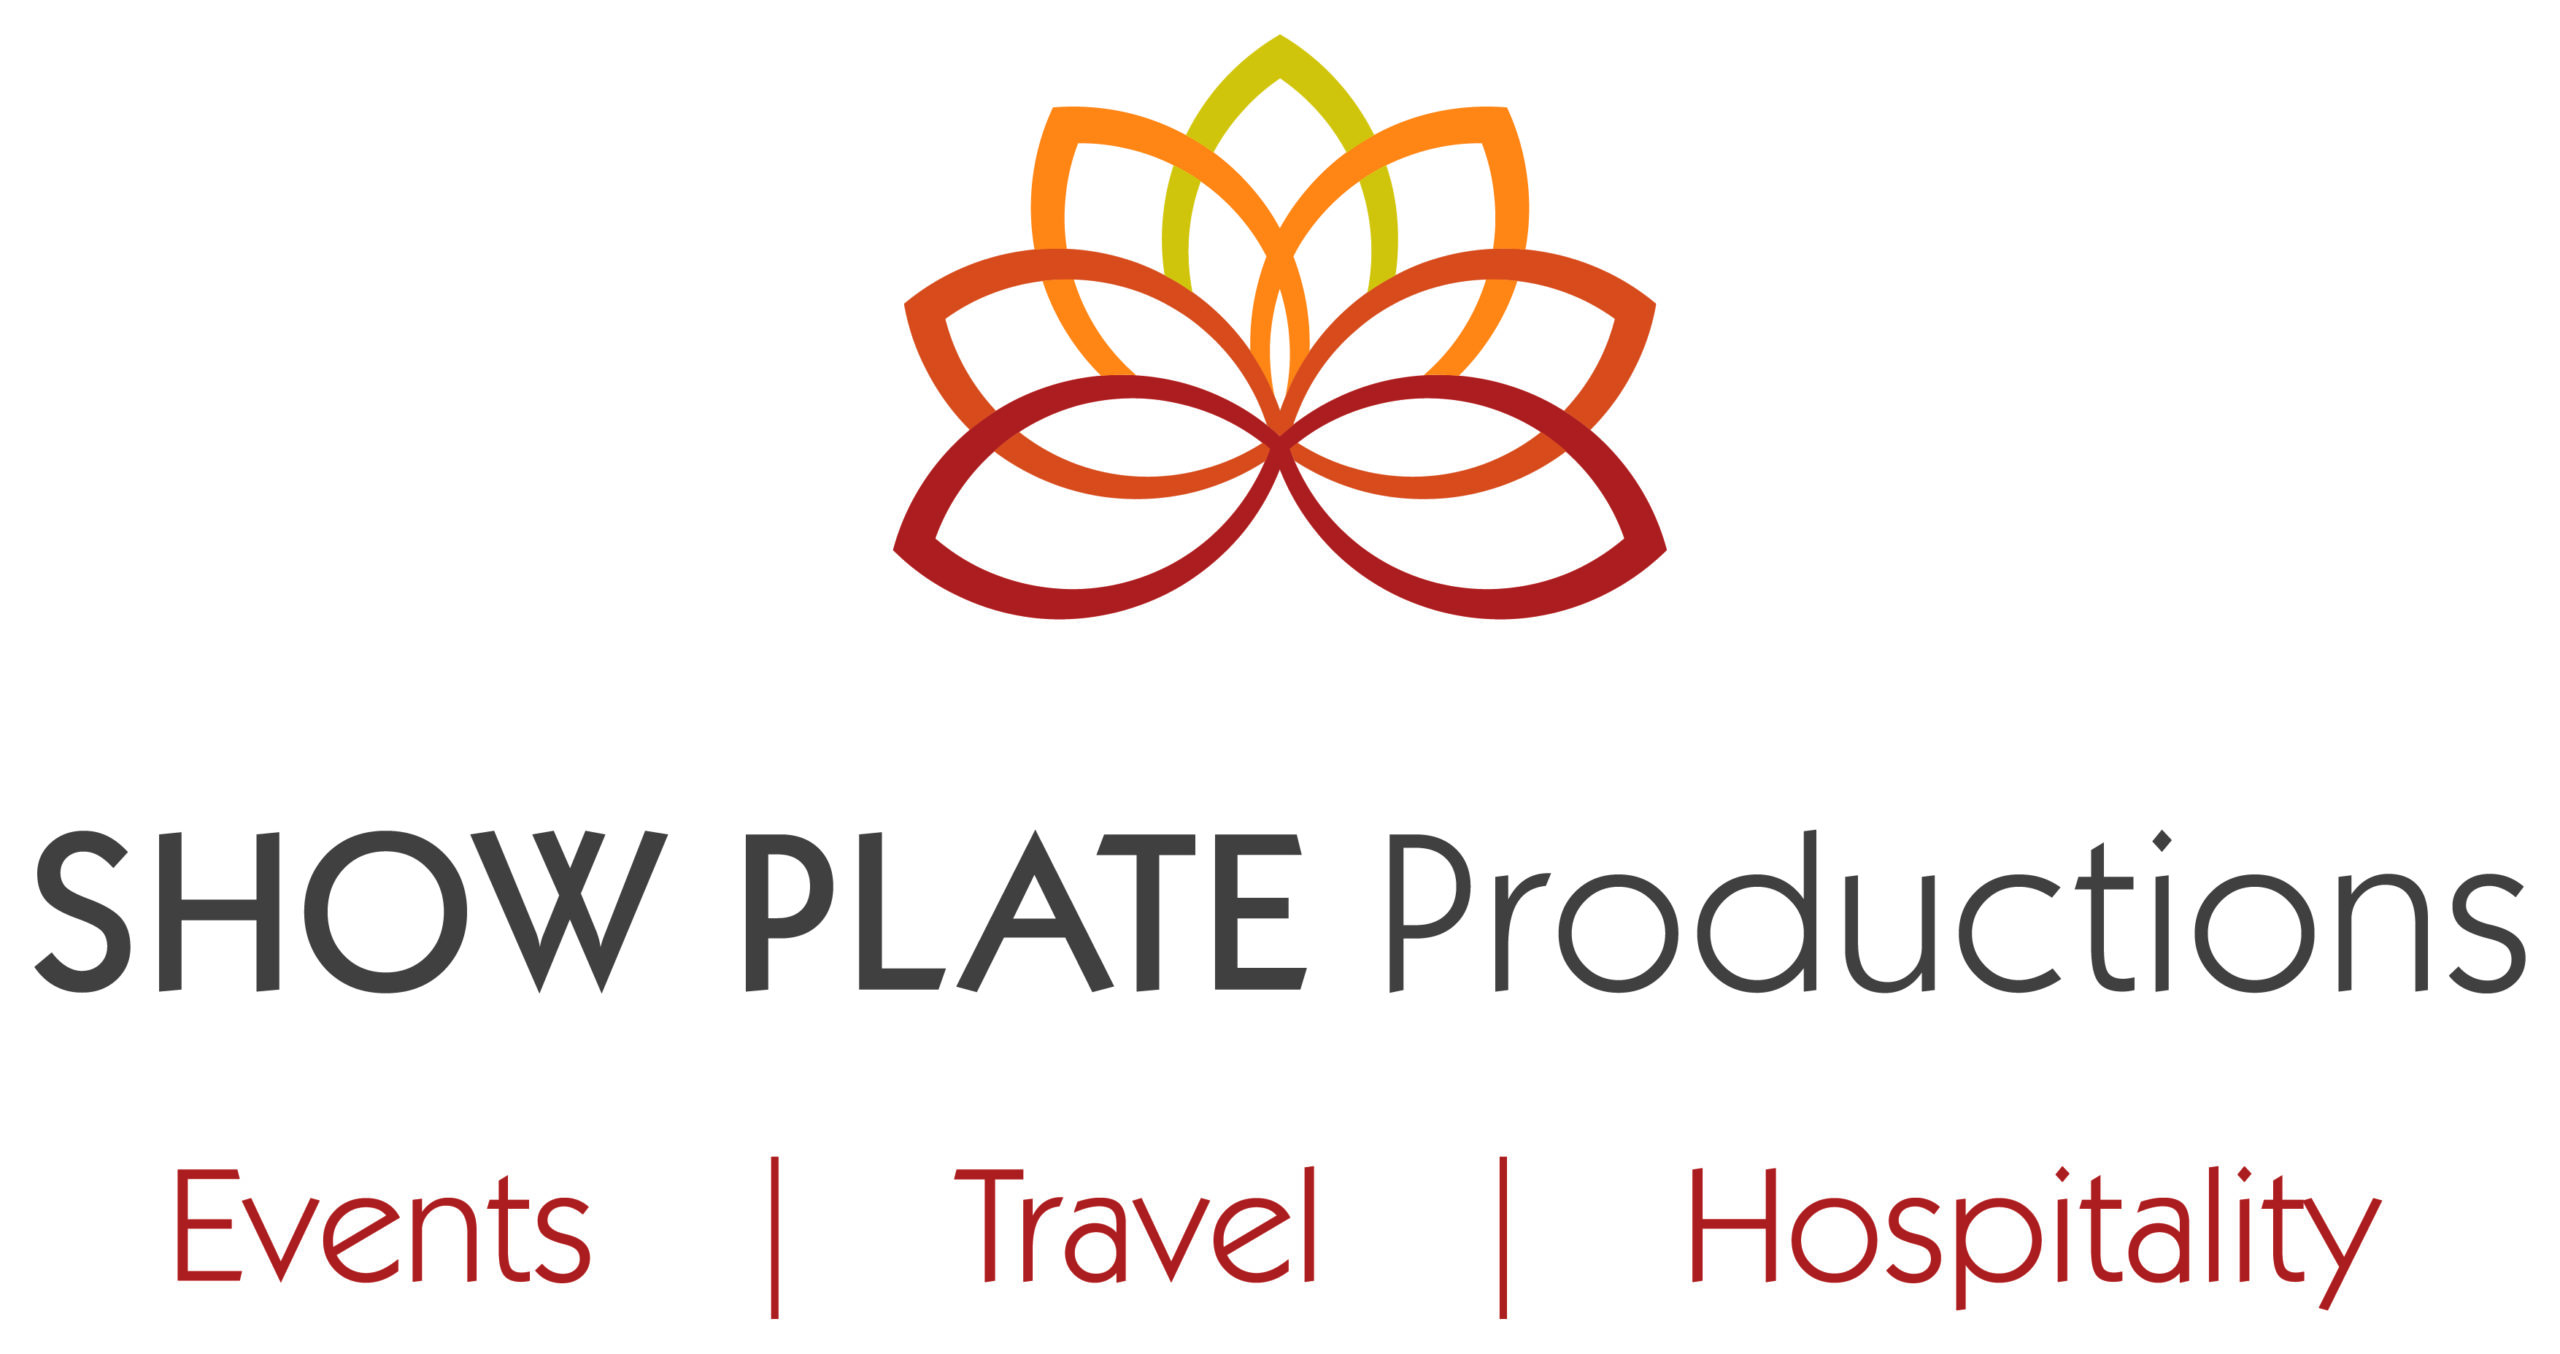 SHOW PLATE Productions